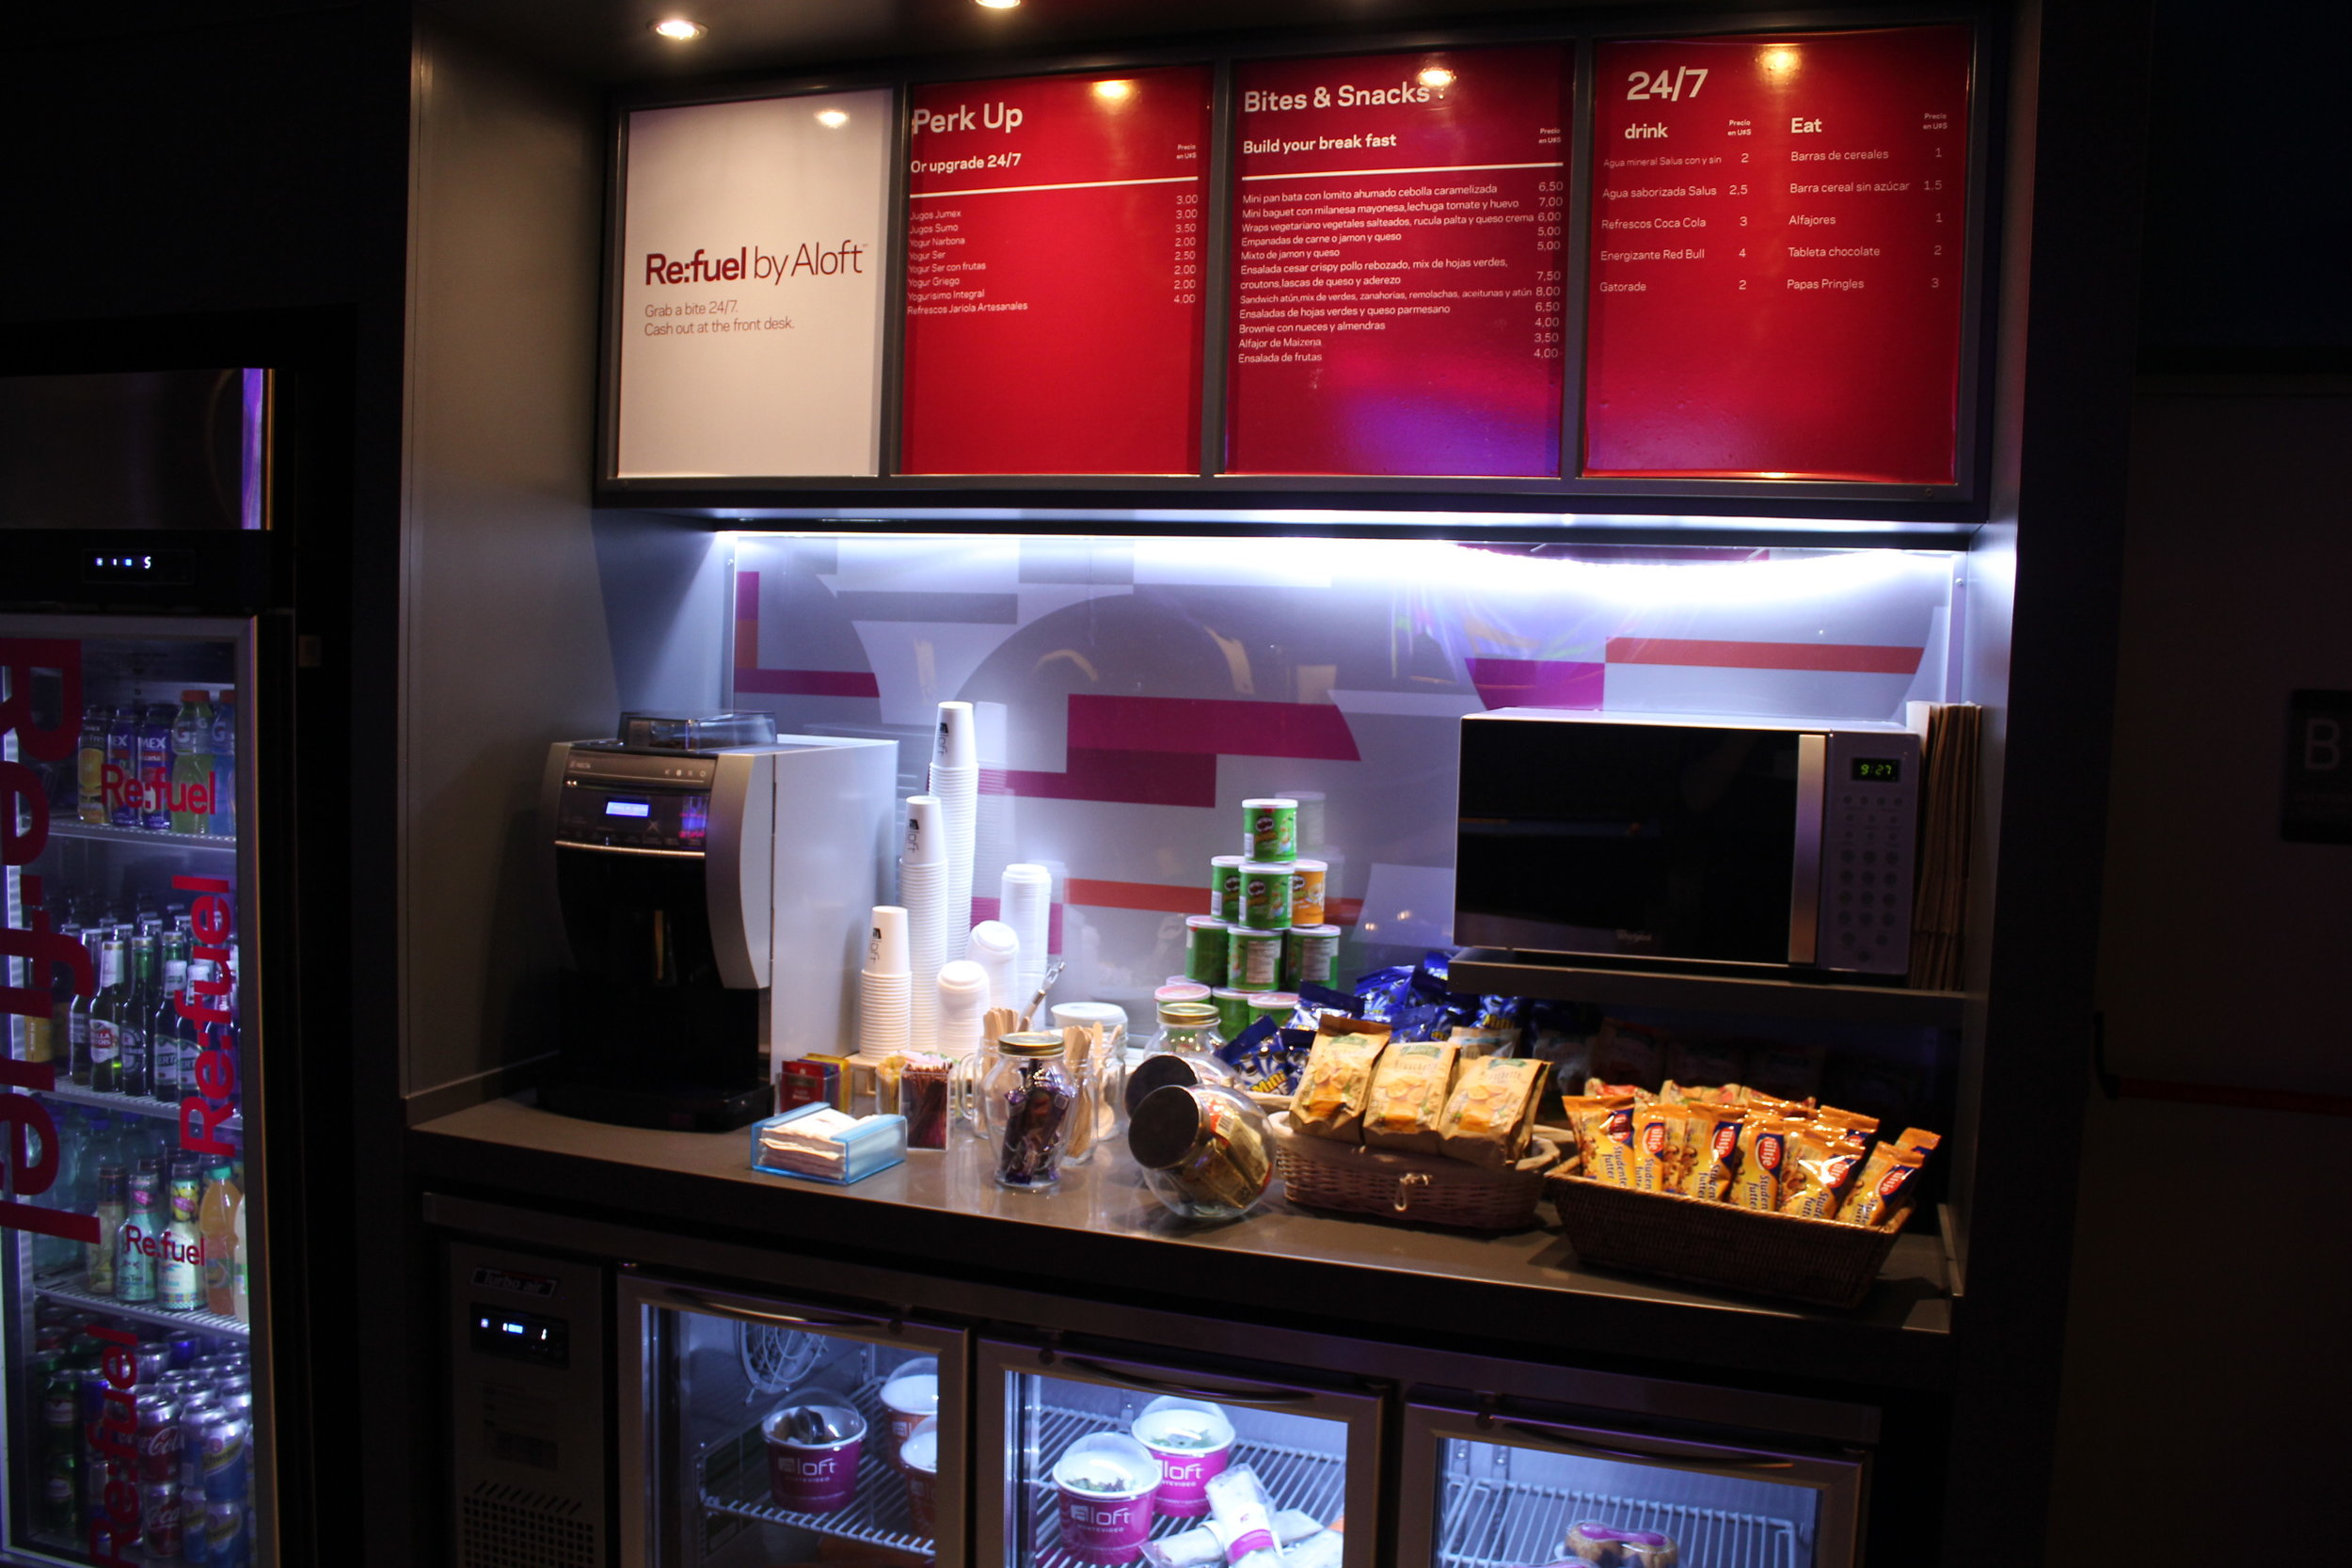 Aloft Montevideo – Re:fuel grab-and-go station